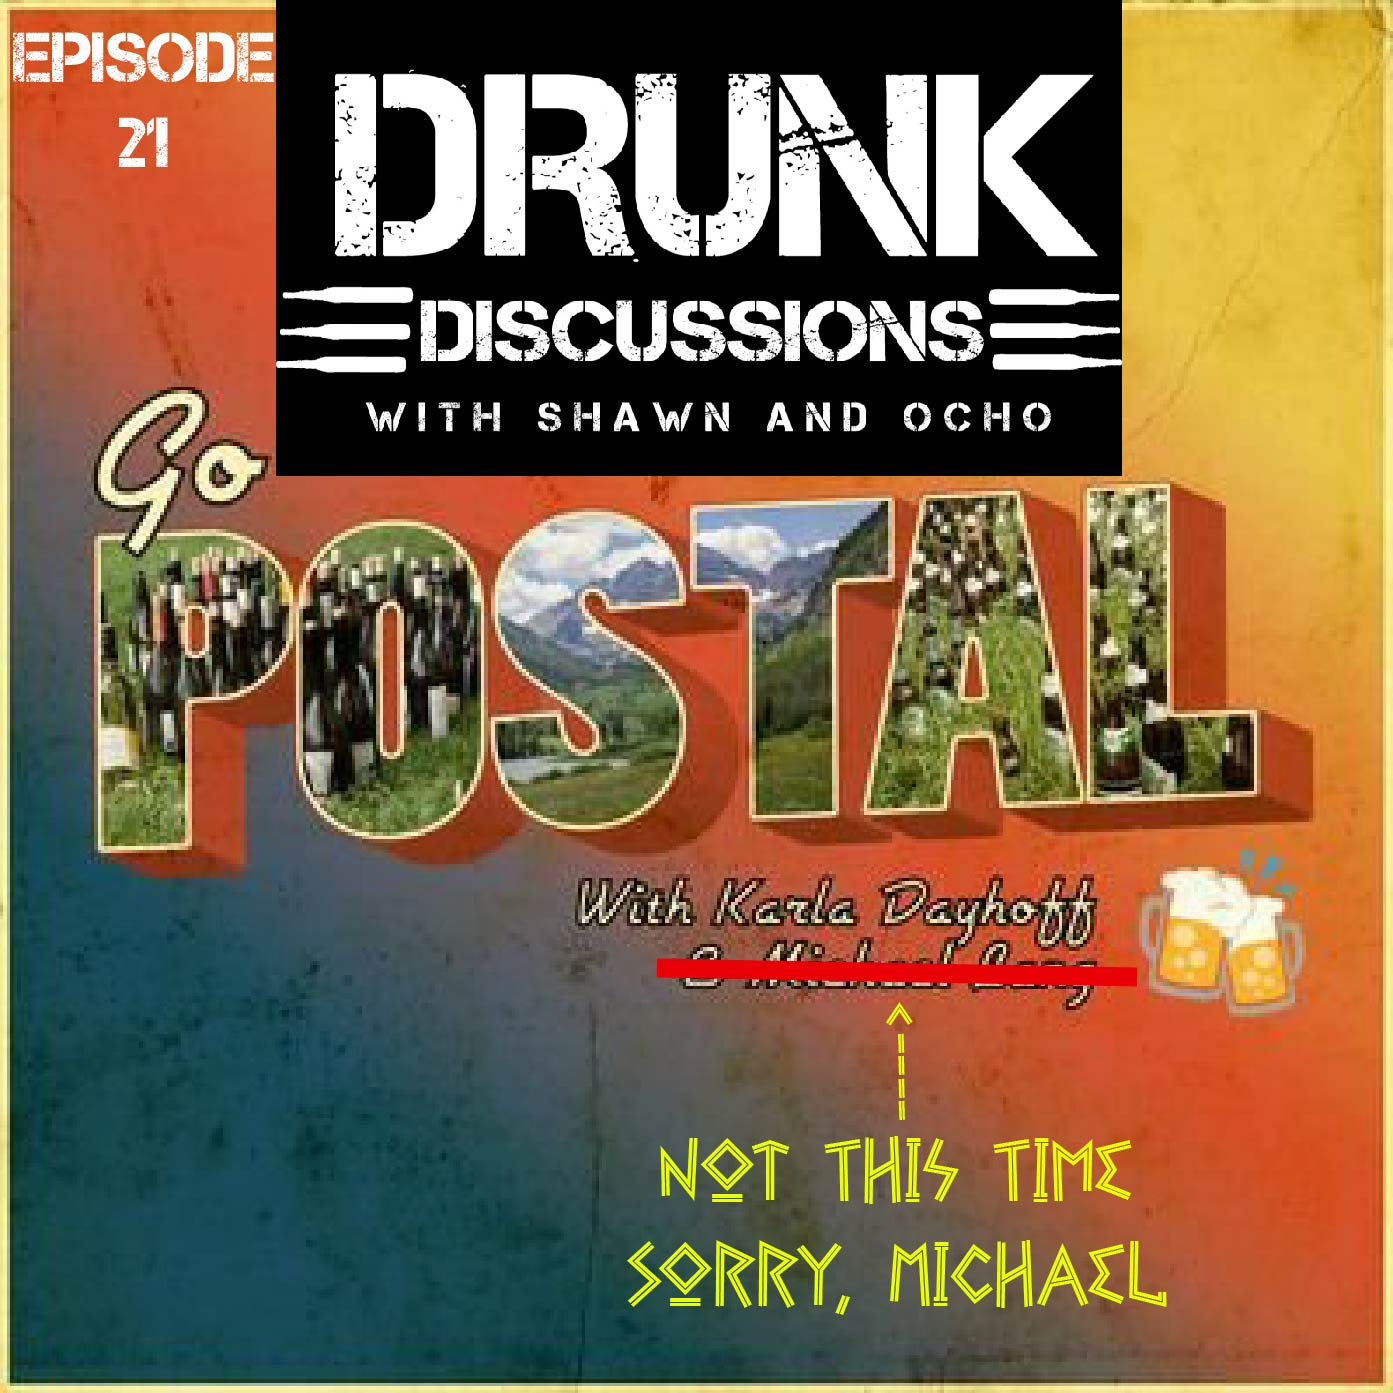 Going Postal With Drunk Discussions and Karla